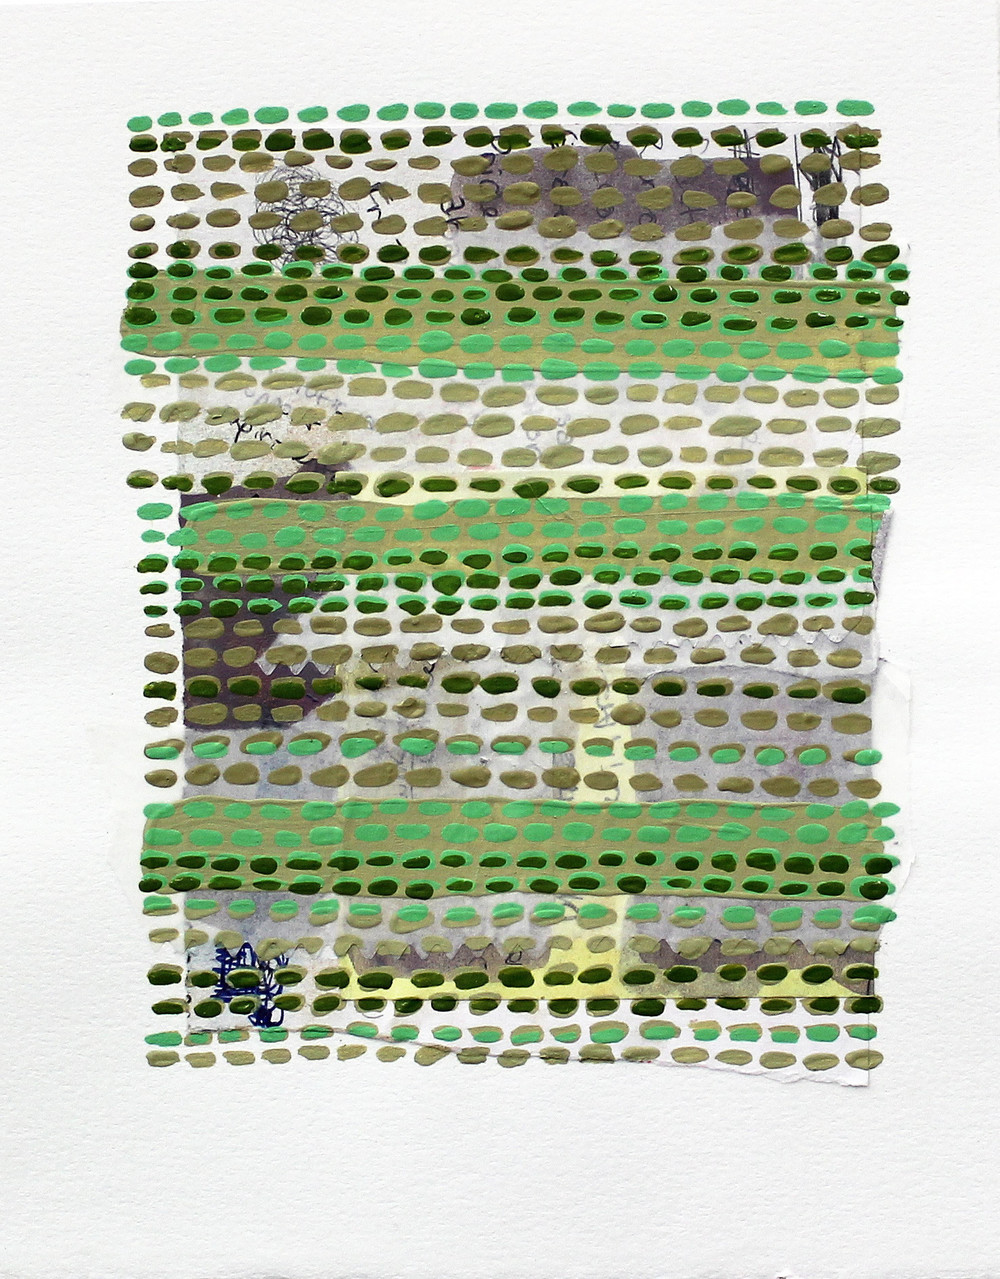 "Pride, Gradually Abandoned , 7.25 x 6"", paper, ink, and acrylic paint on paper, 2015 (SOLD)"